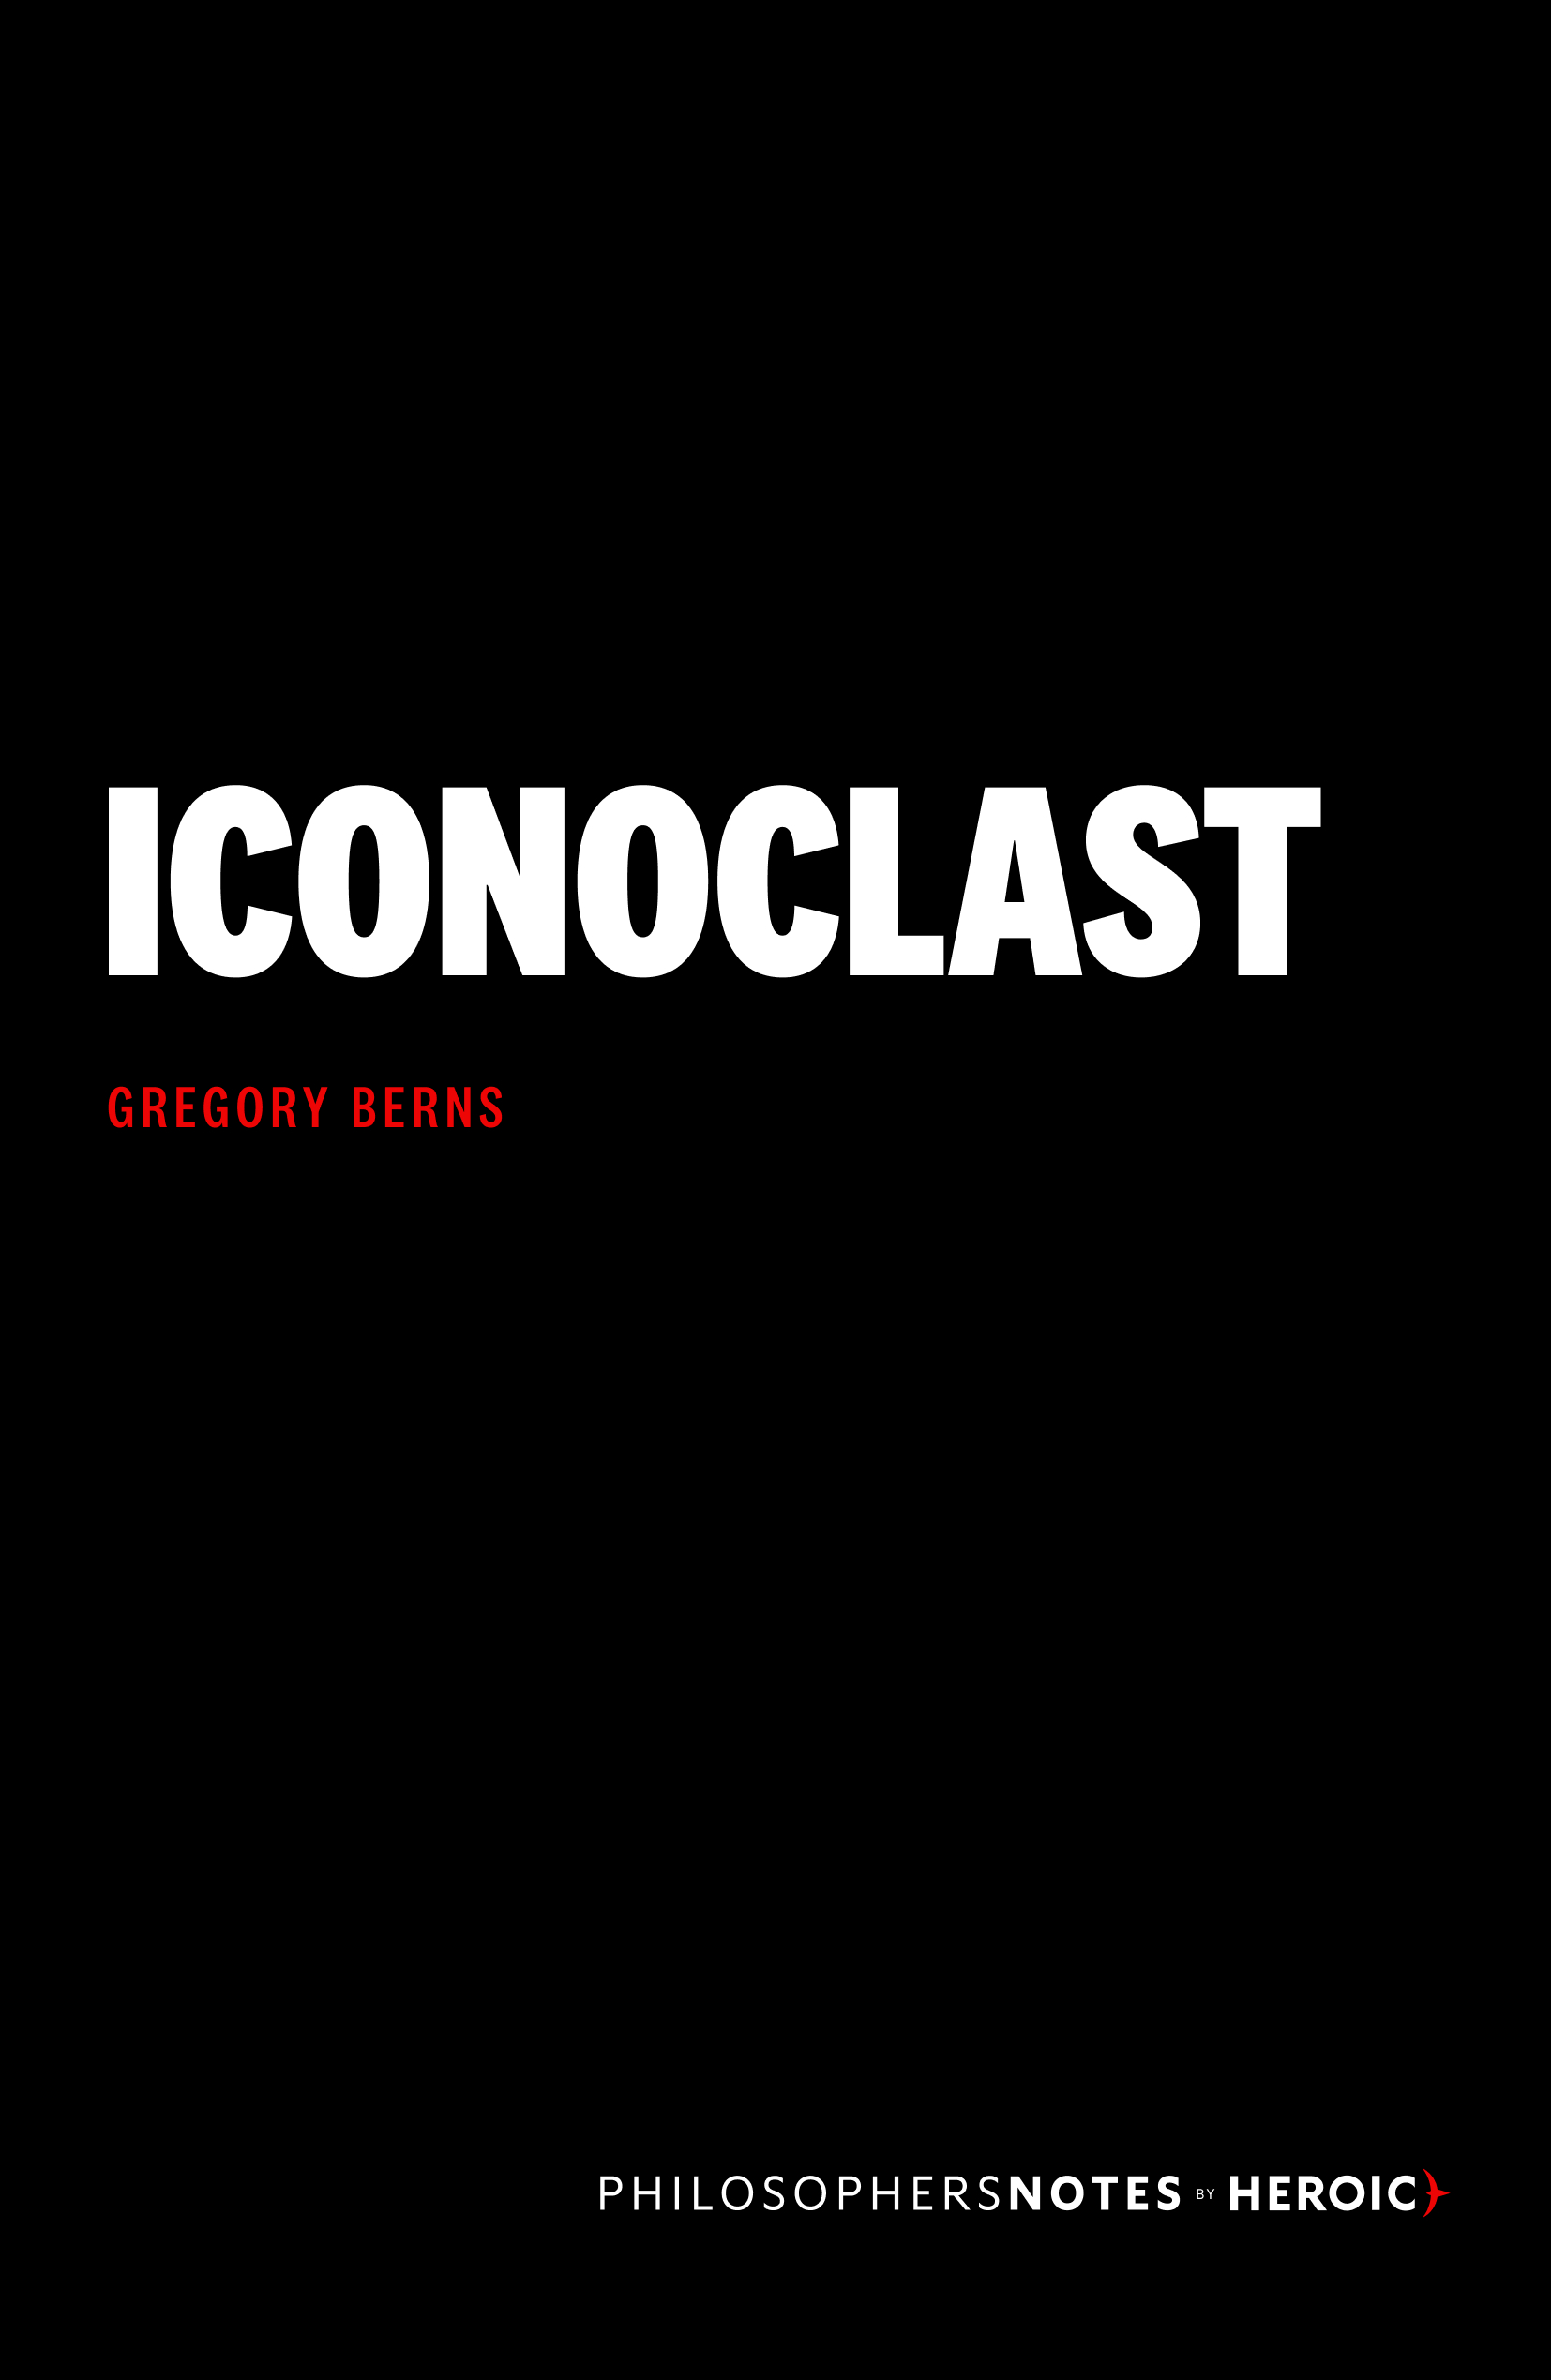 Iconoclast Book Cover